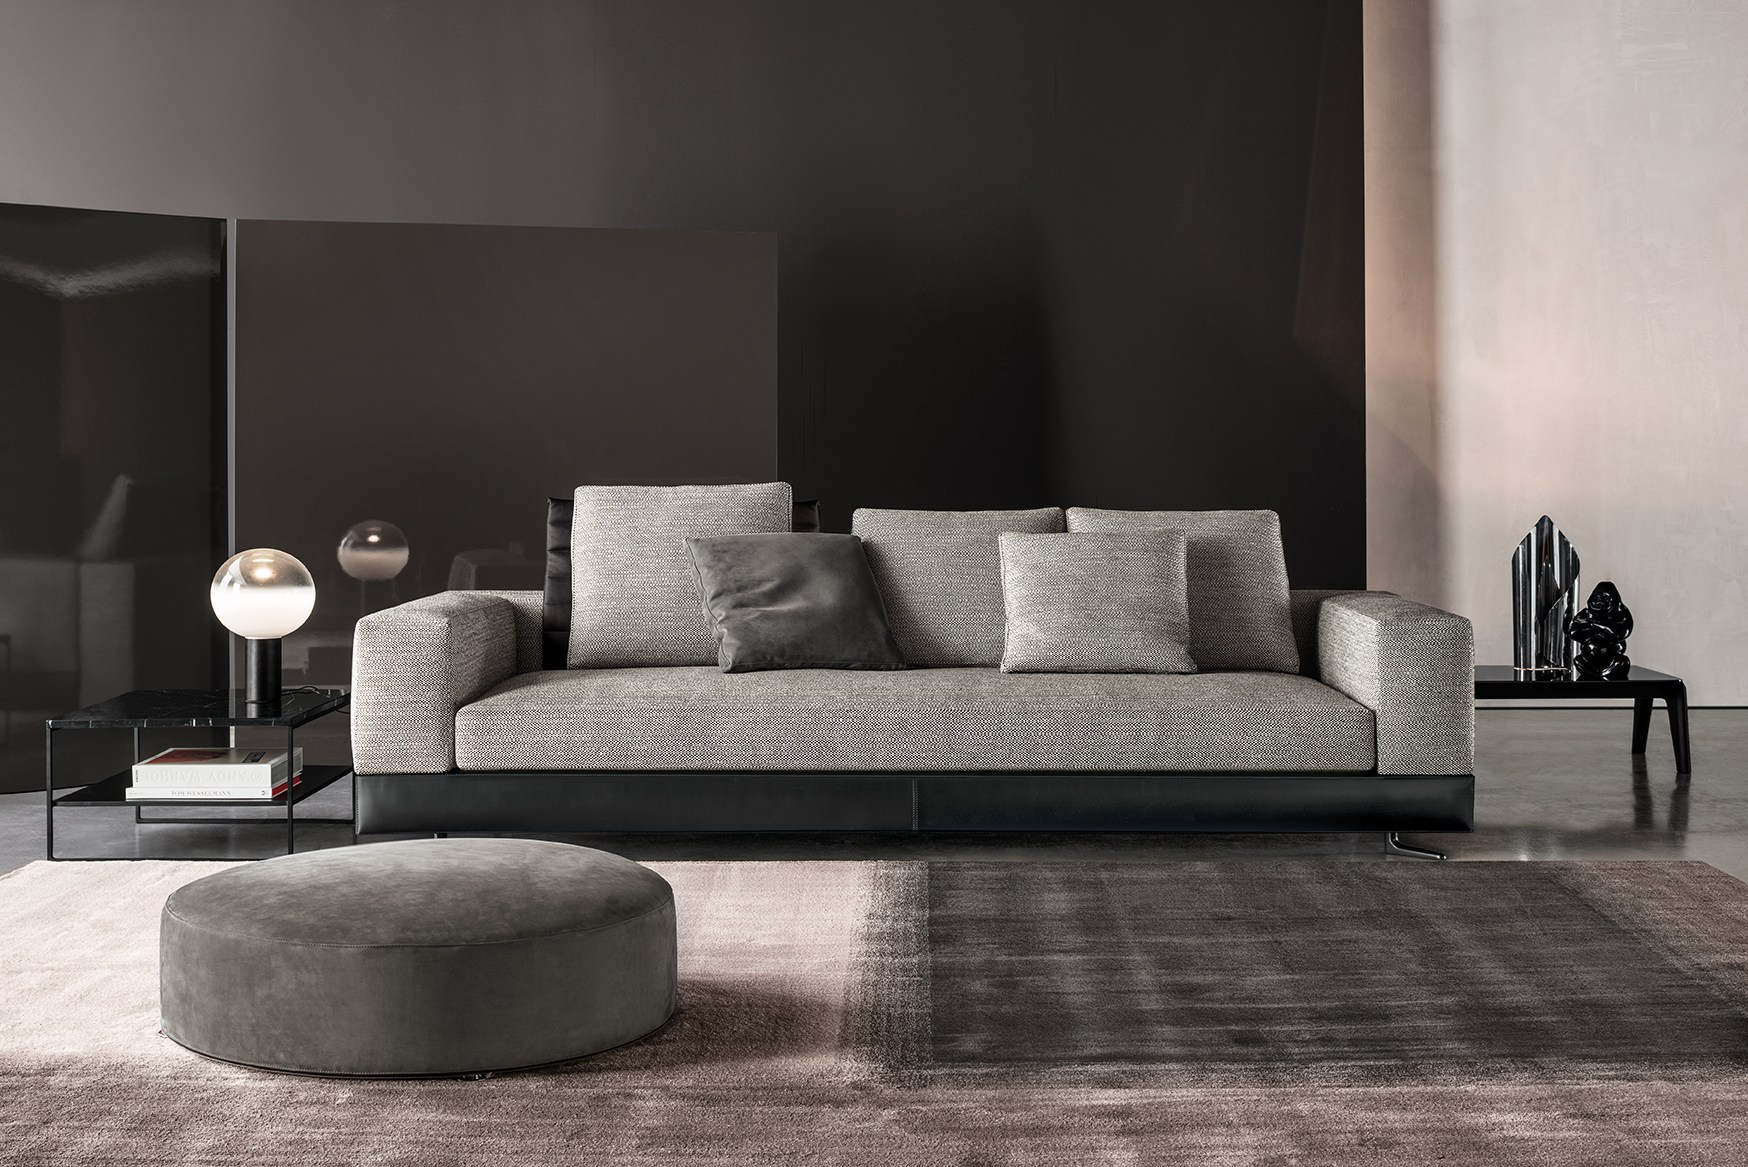 Admirable White Seating System By Rodolfo Dordoni For Minotti Caraccident5 Cool Chair Designs And Ideas Caraccident5Info